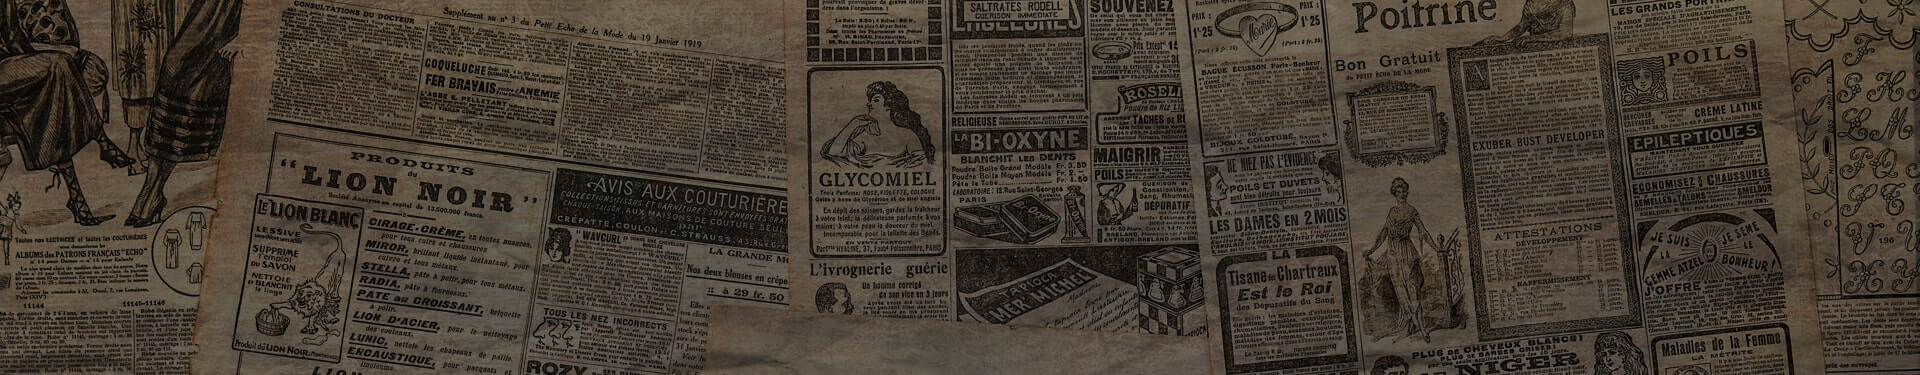 Newspaper Clippings From 1903 Featuring Jones Dairy Farm